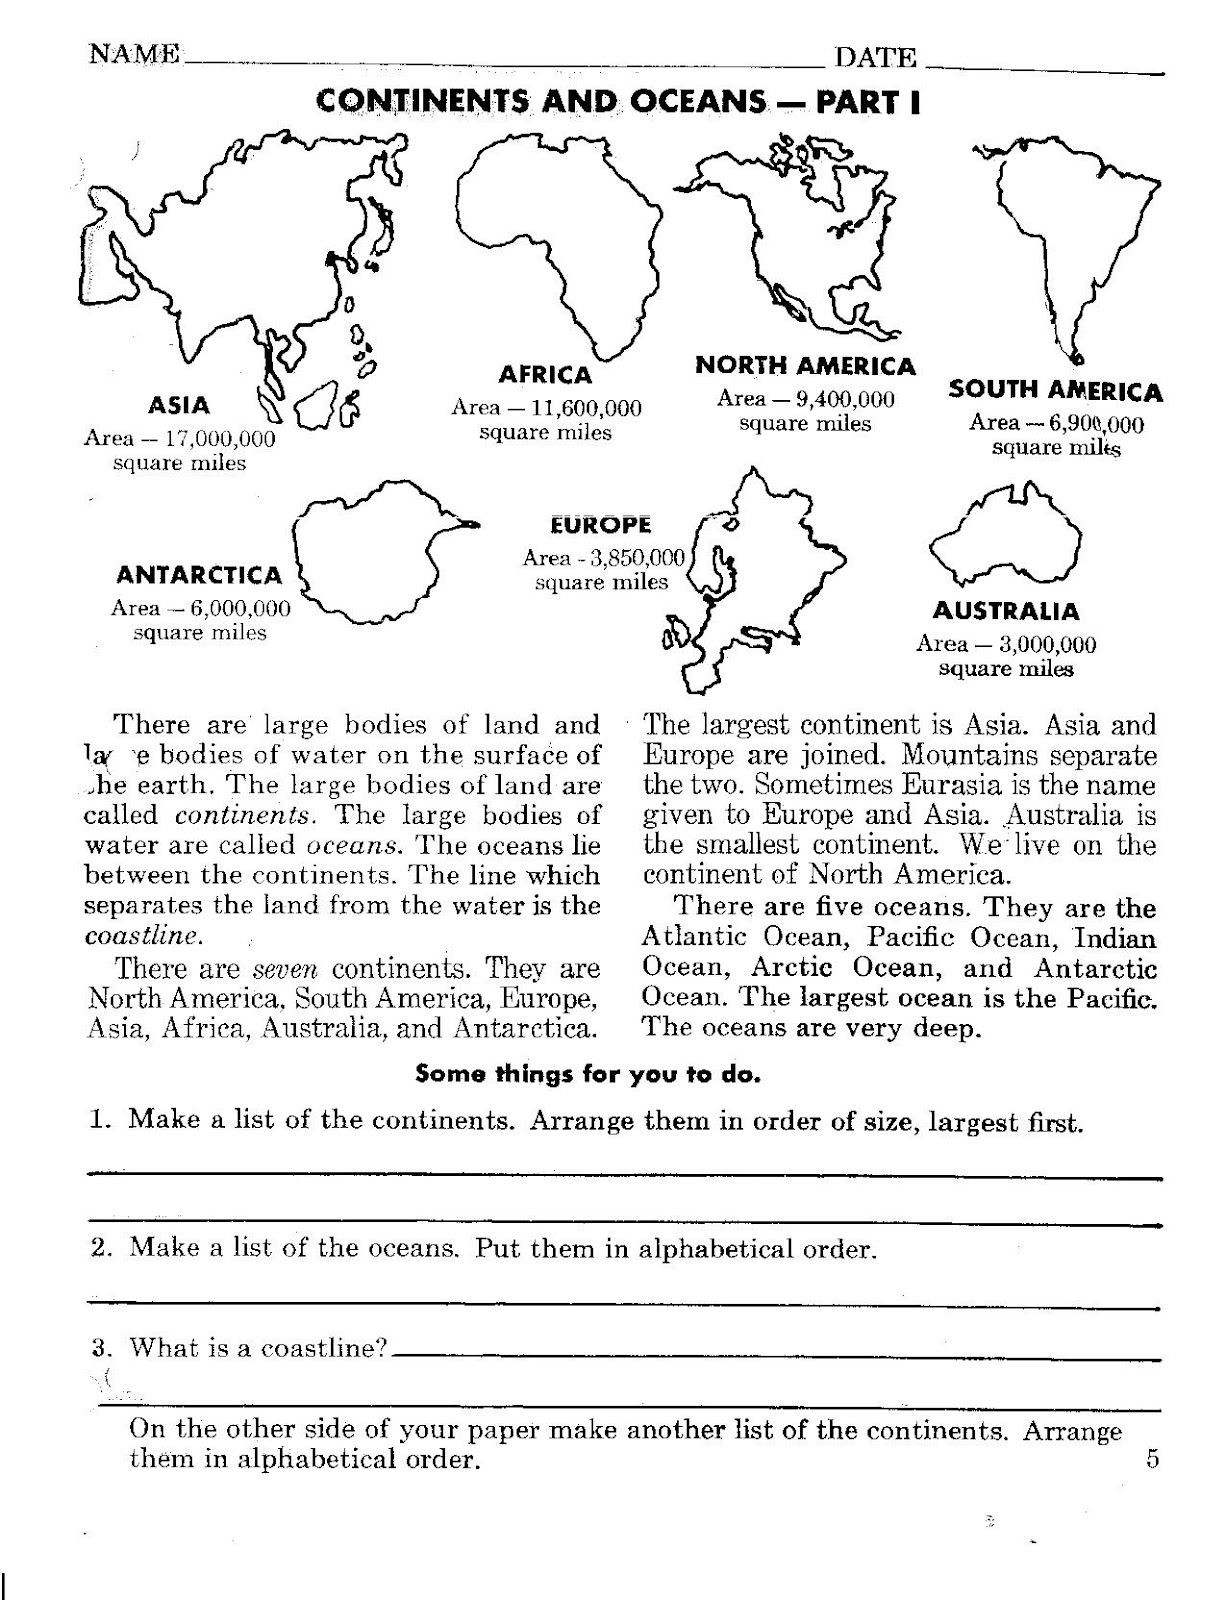 Continents and Oceans Worksheet Printable Continents and Oceans Worksheets